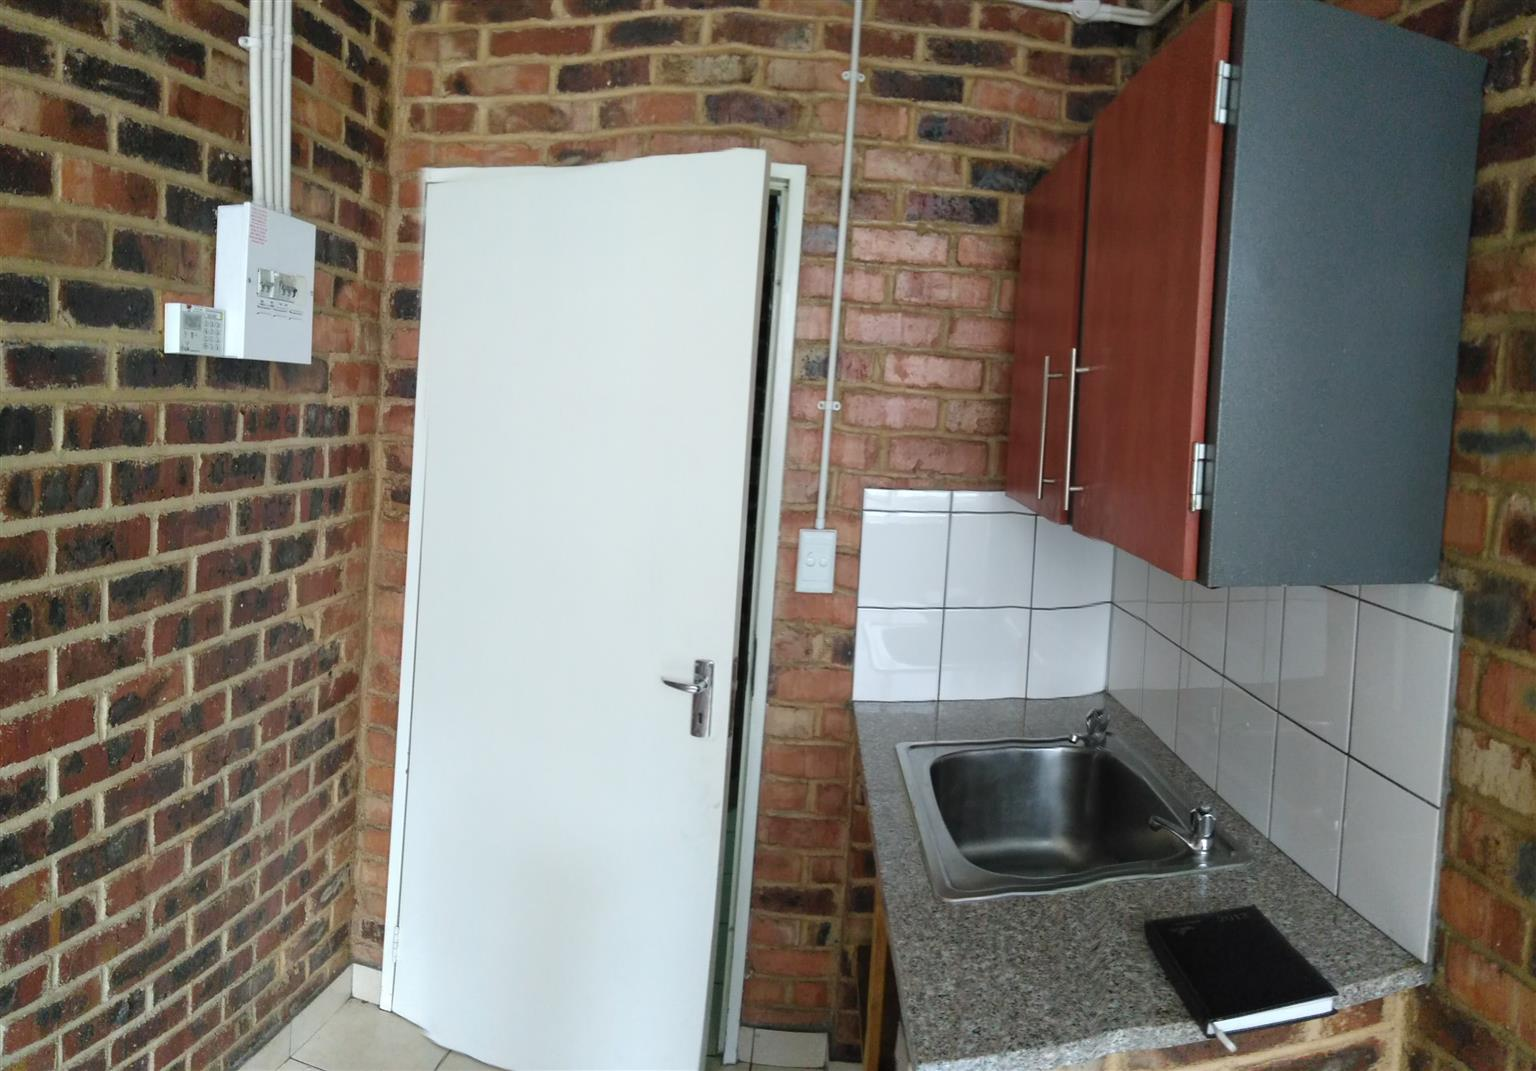 1 bedroom flats available for rent in Jo'burg City at Markwell house